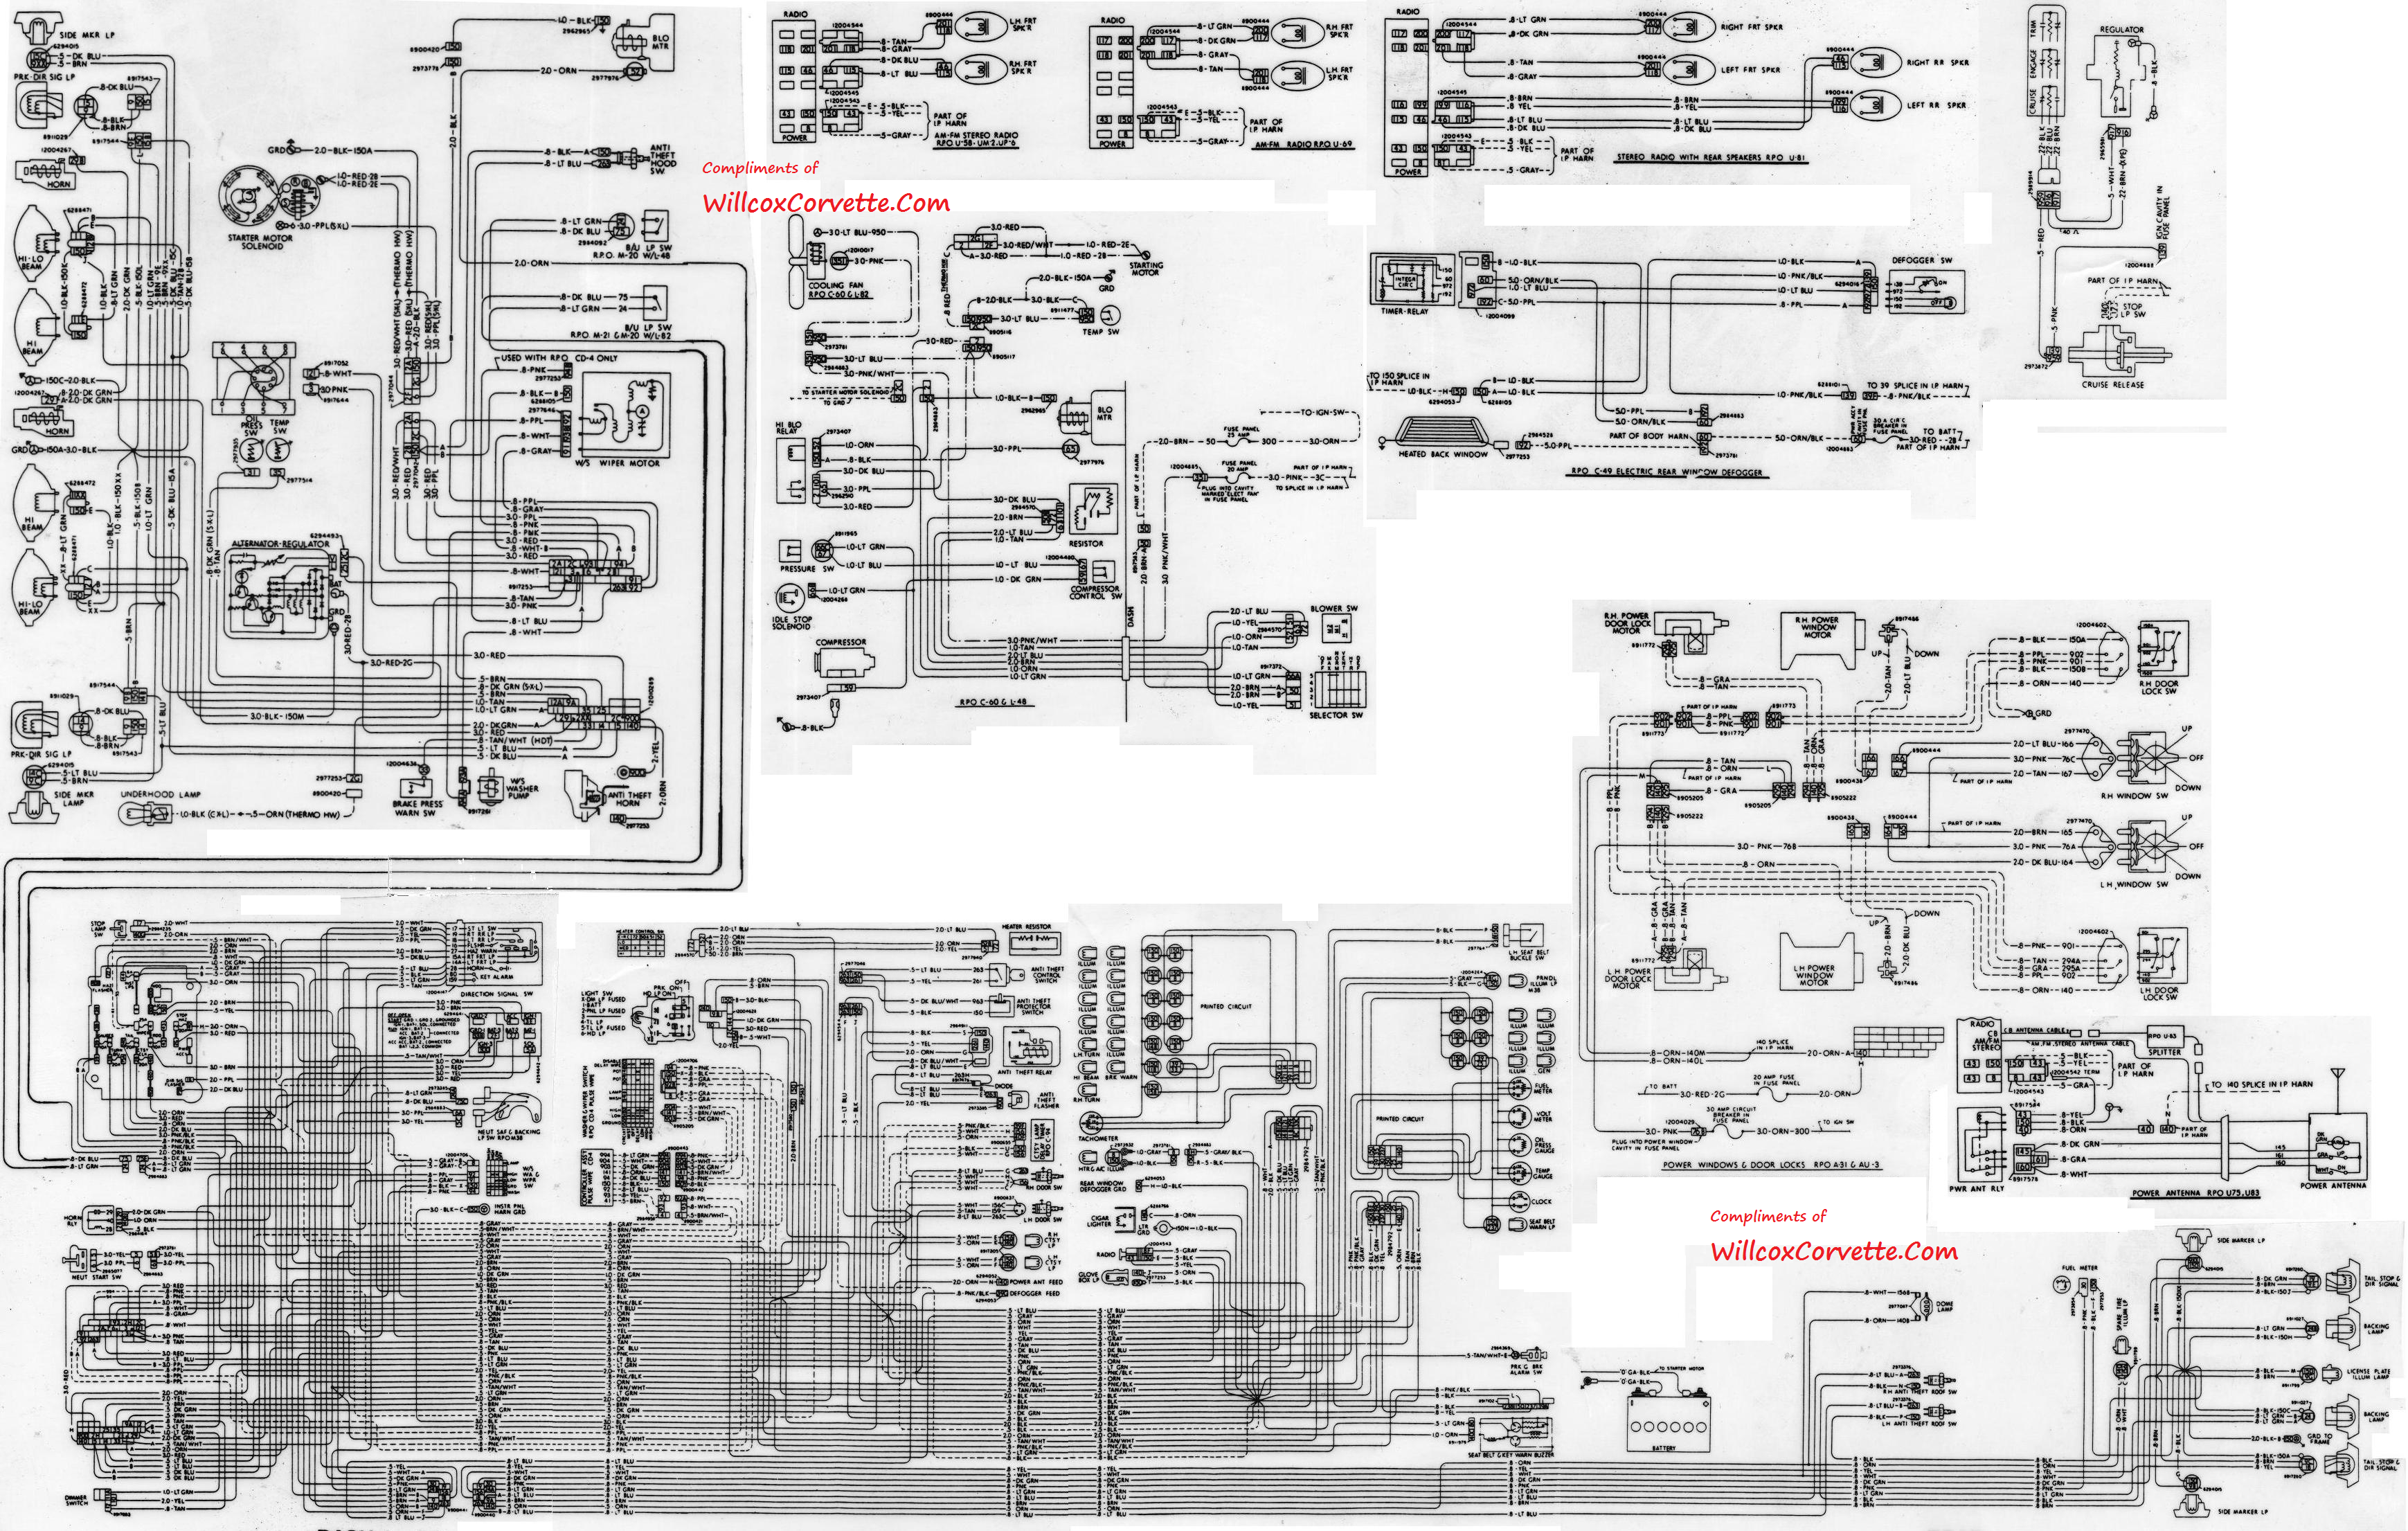 79 COMBINED TRACER SCHEMATIC c3 corvette wiring diagram radio wiring diagram \u2022 wiring diagrams 82 corvette wiring diagram at eliteediting.co